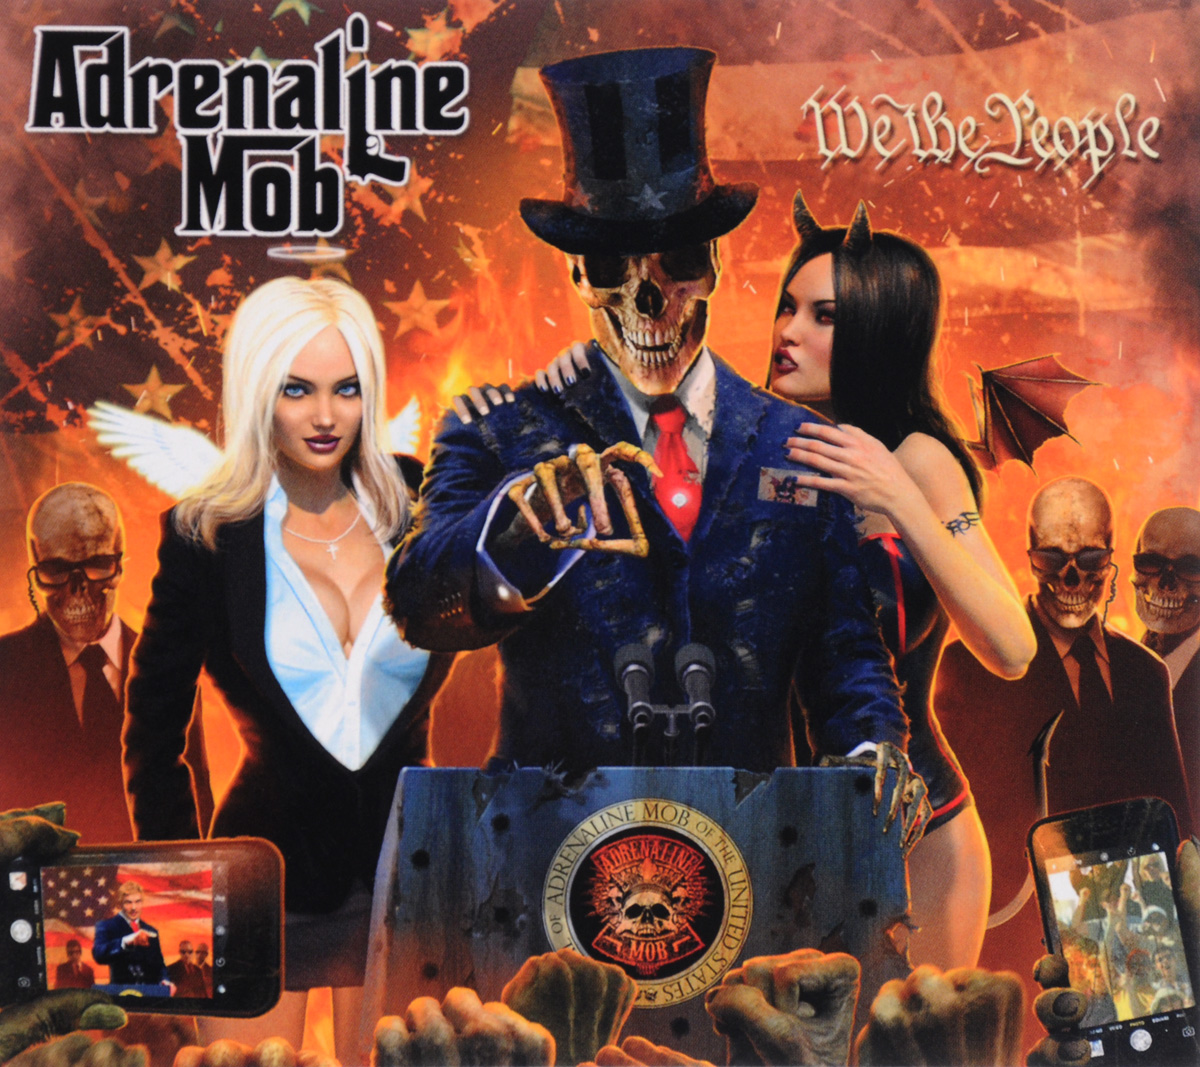 Adrenaline Mob Adrenaline Mob. We The People we the people